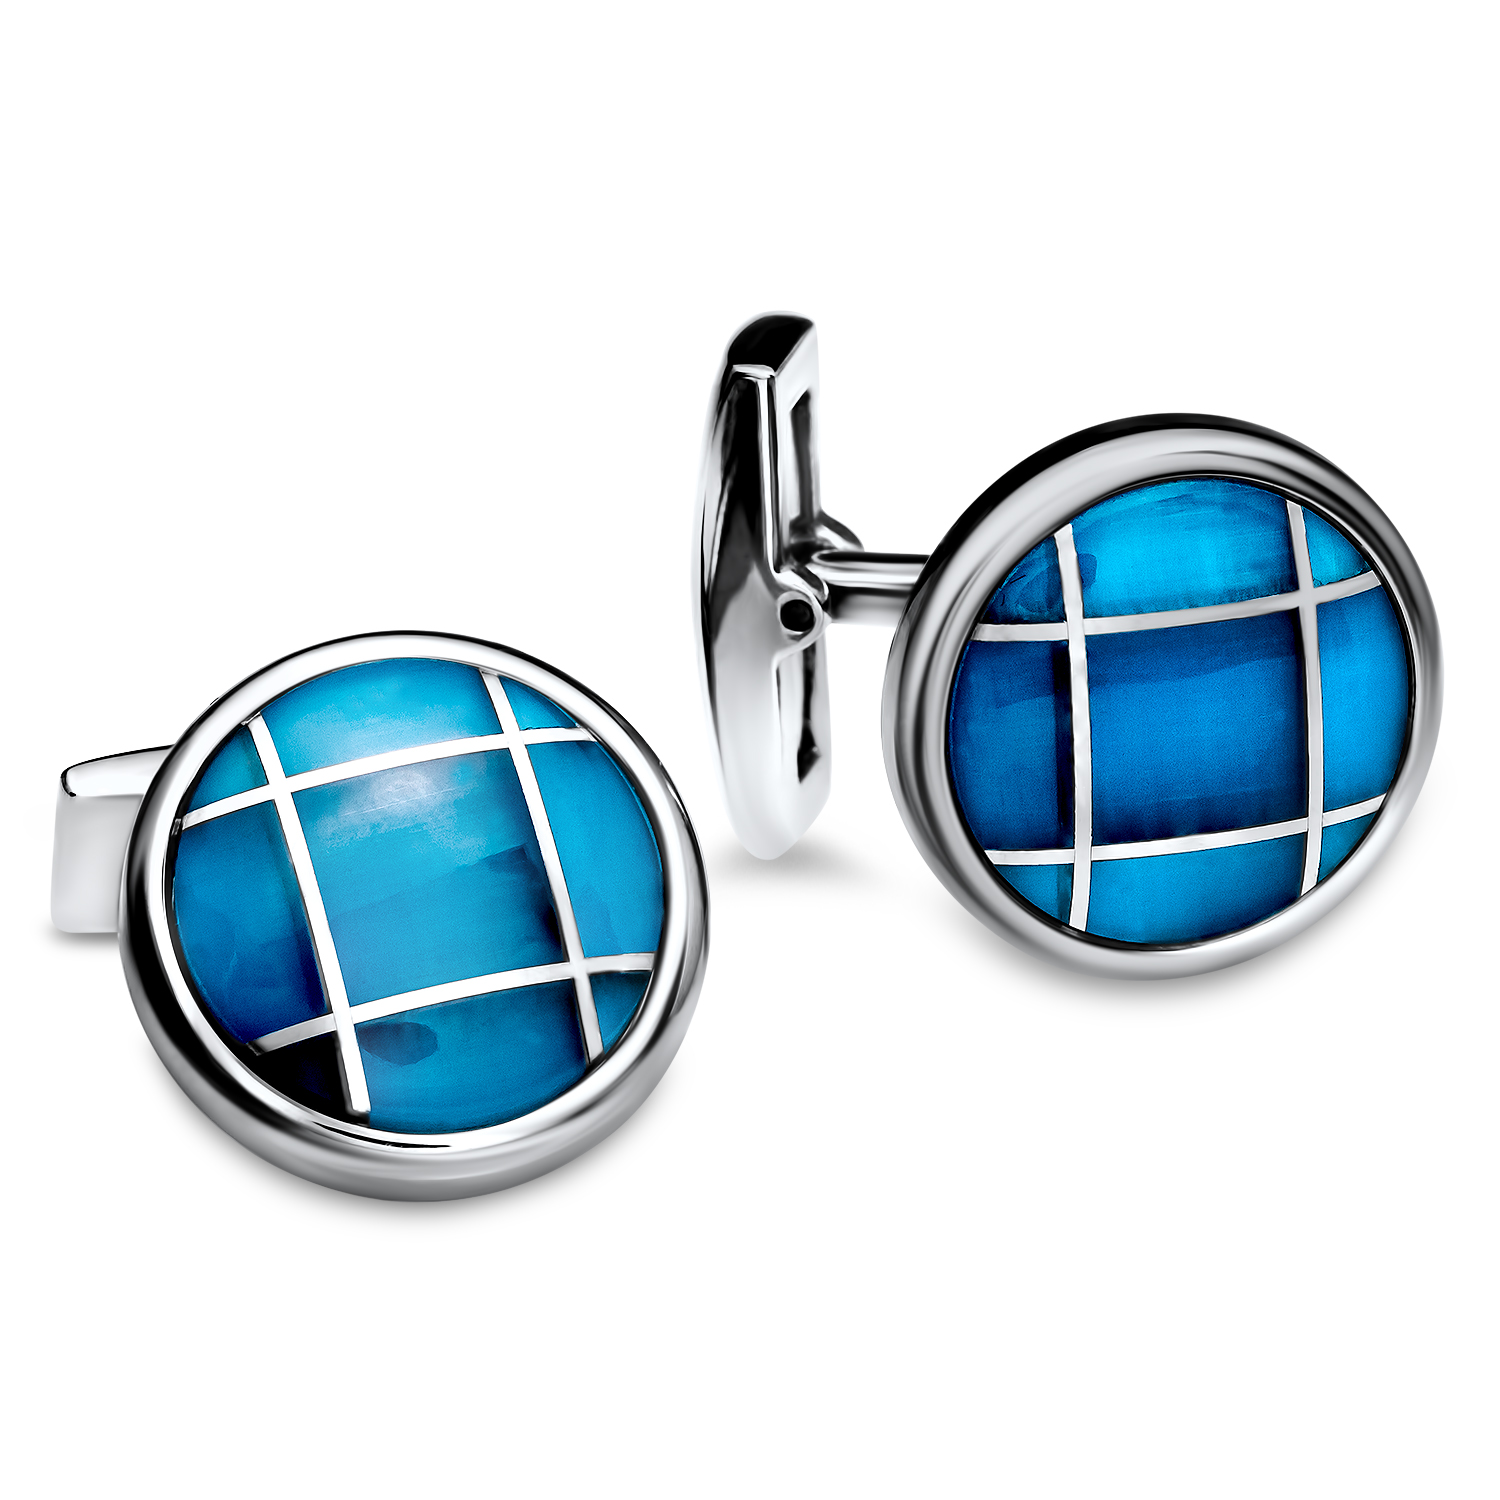 Stainless Steel & Glass Cuff Links